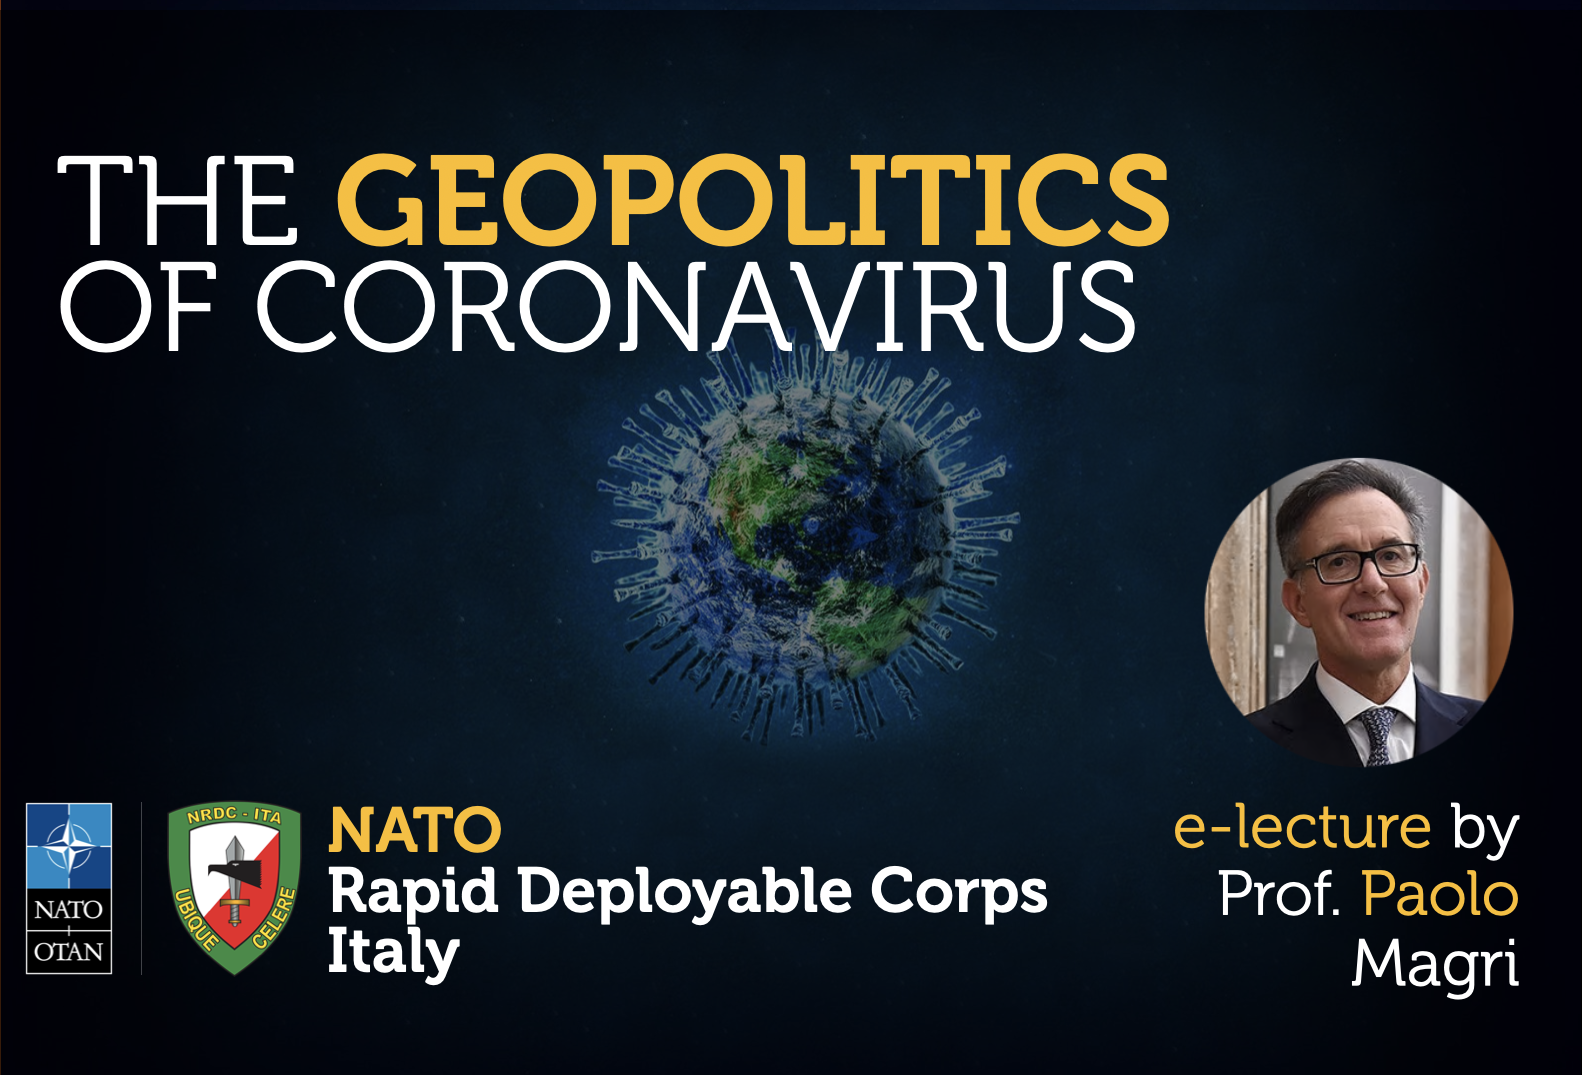 Conference - NRDC-ITA interview on Coronavirus Geopolitics.